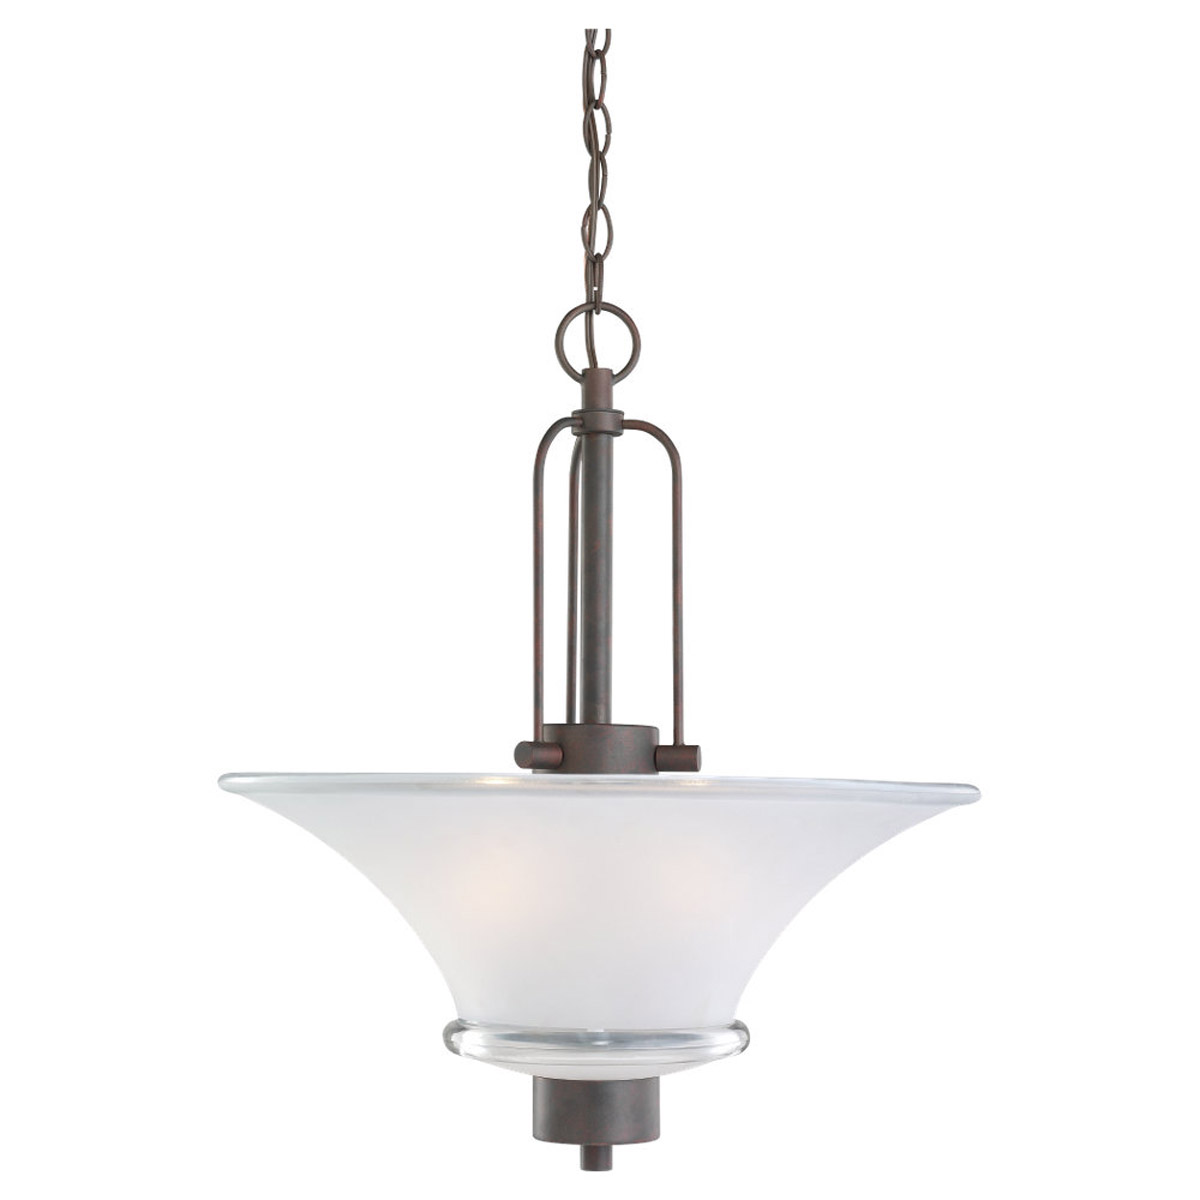 Sea Gull Lighting Newport 2 Light Pendant in Misted Bronze 65284-814